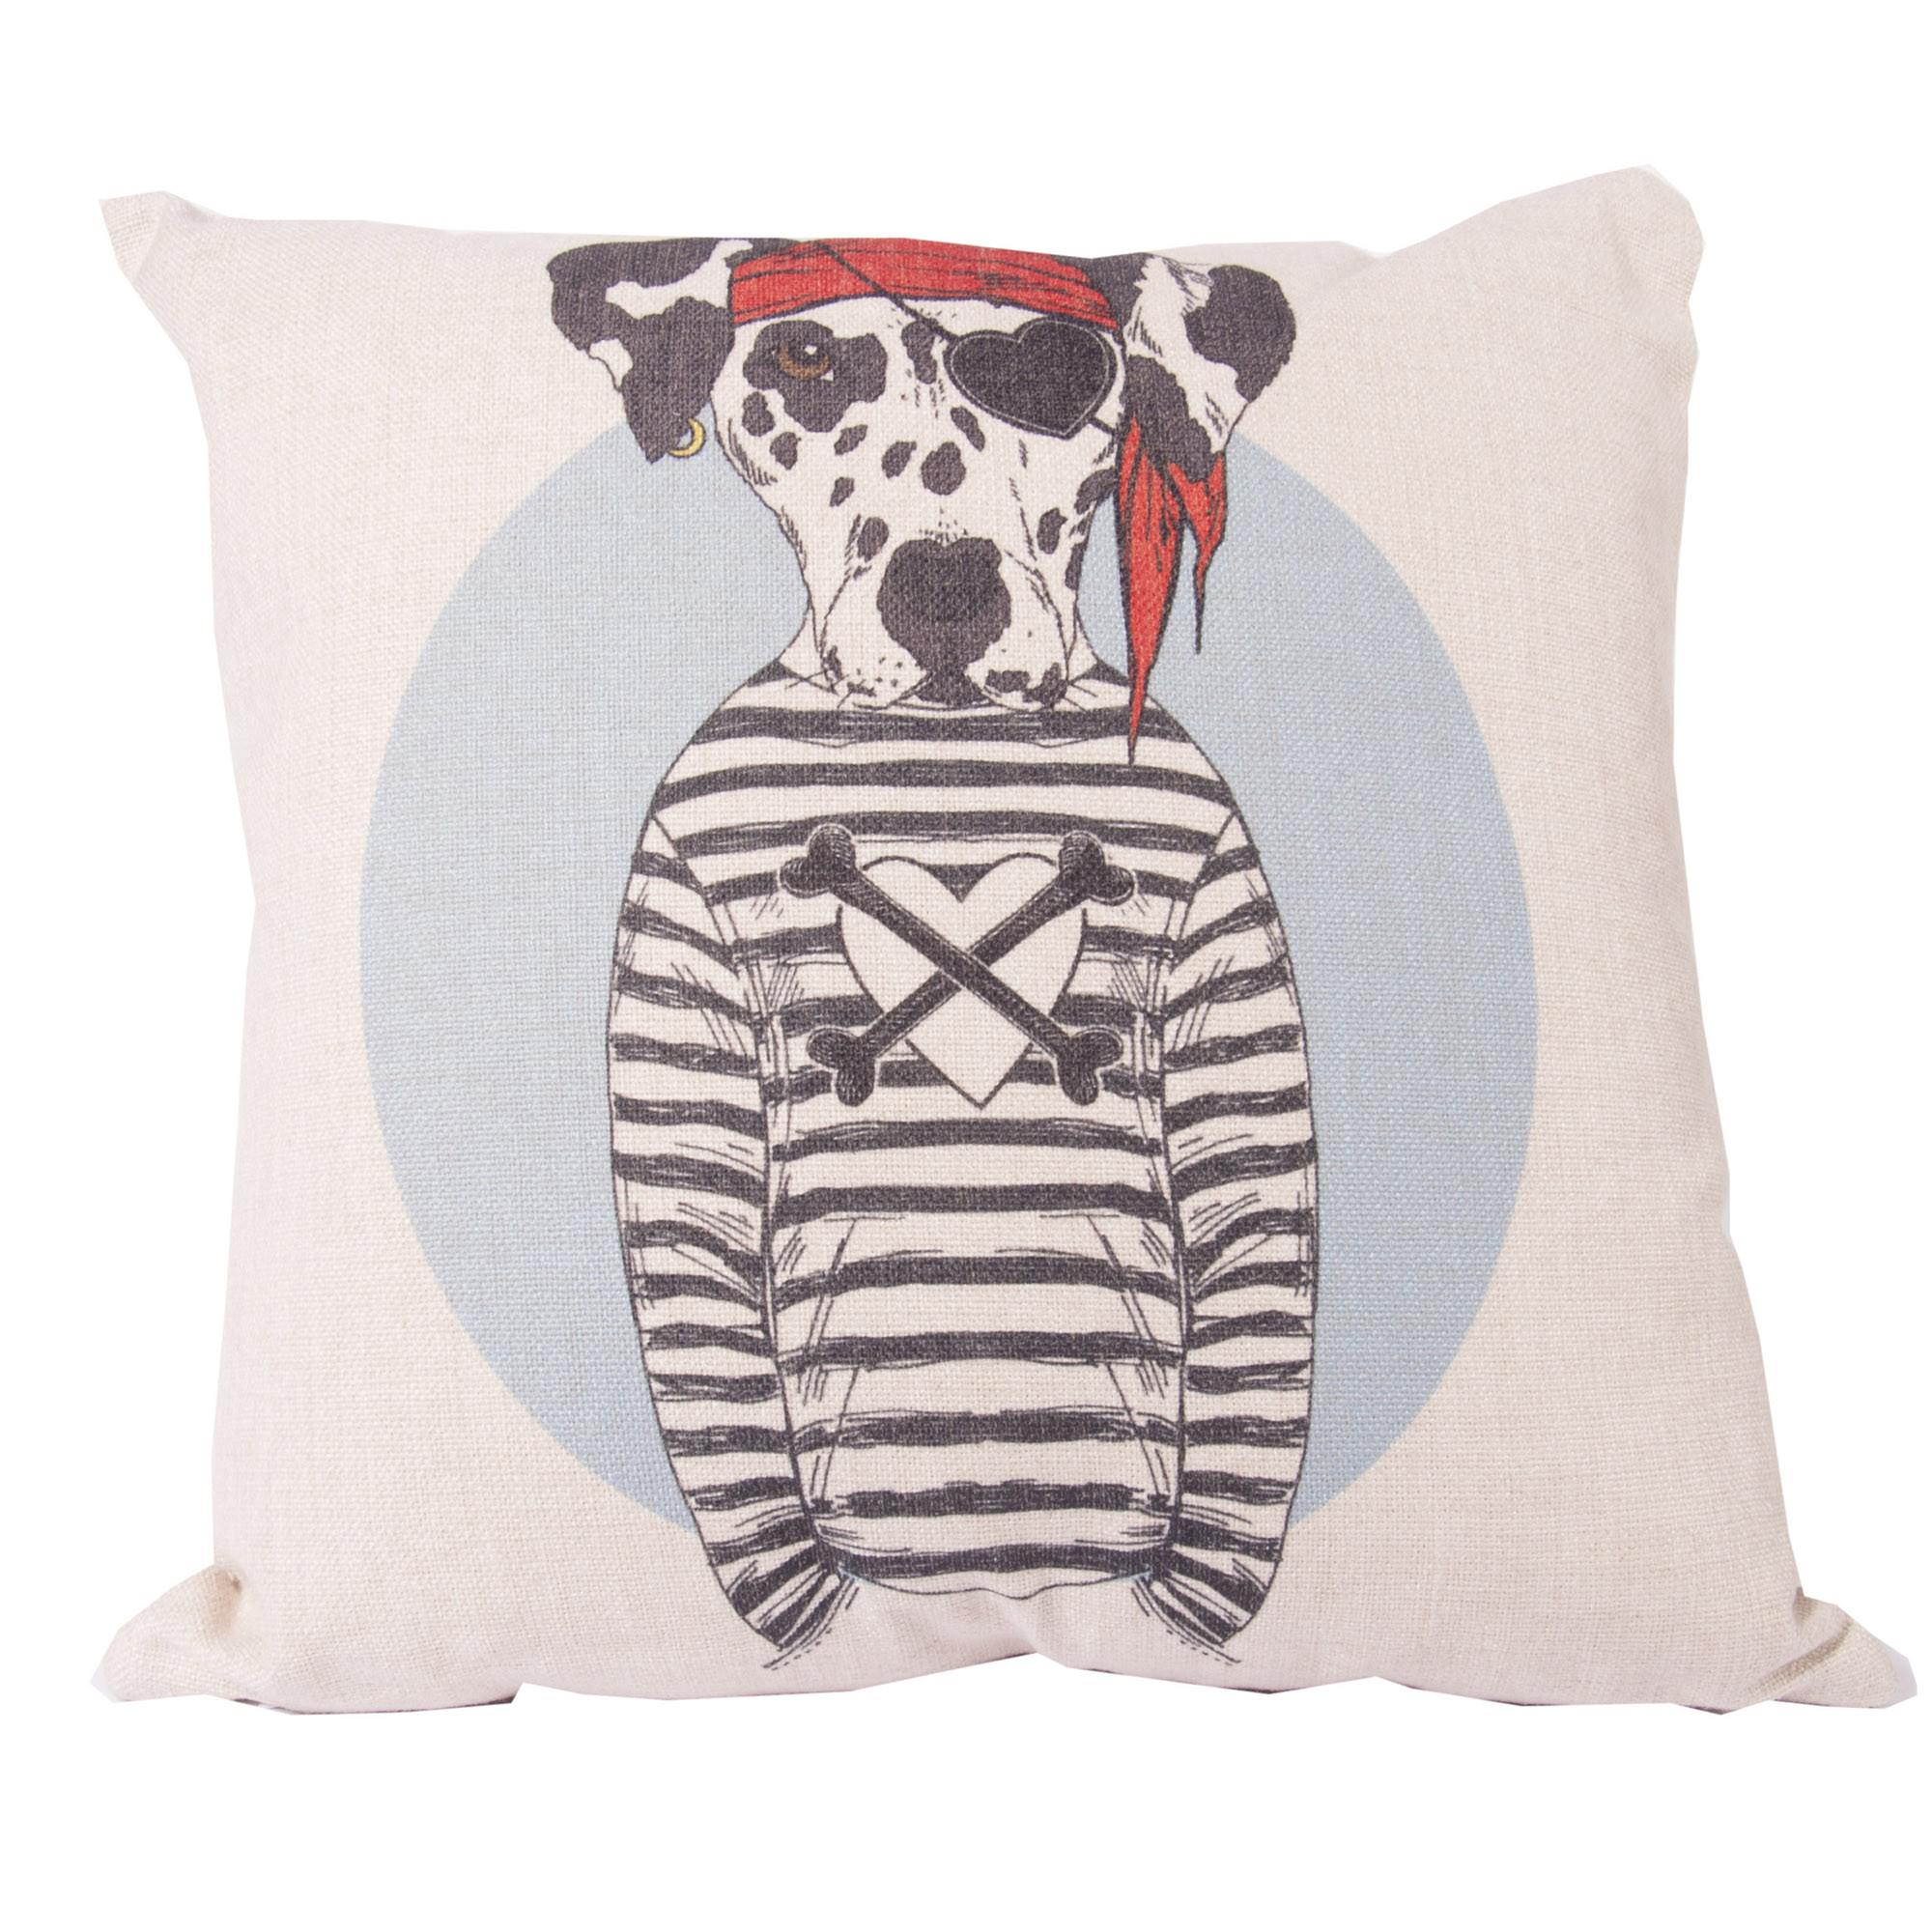 Pirate Dalmation Scatter Cushion Cover